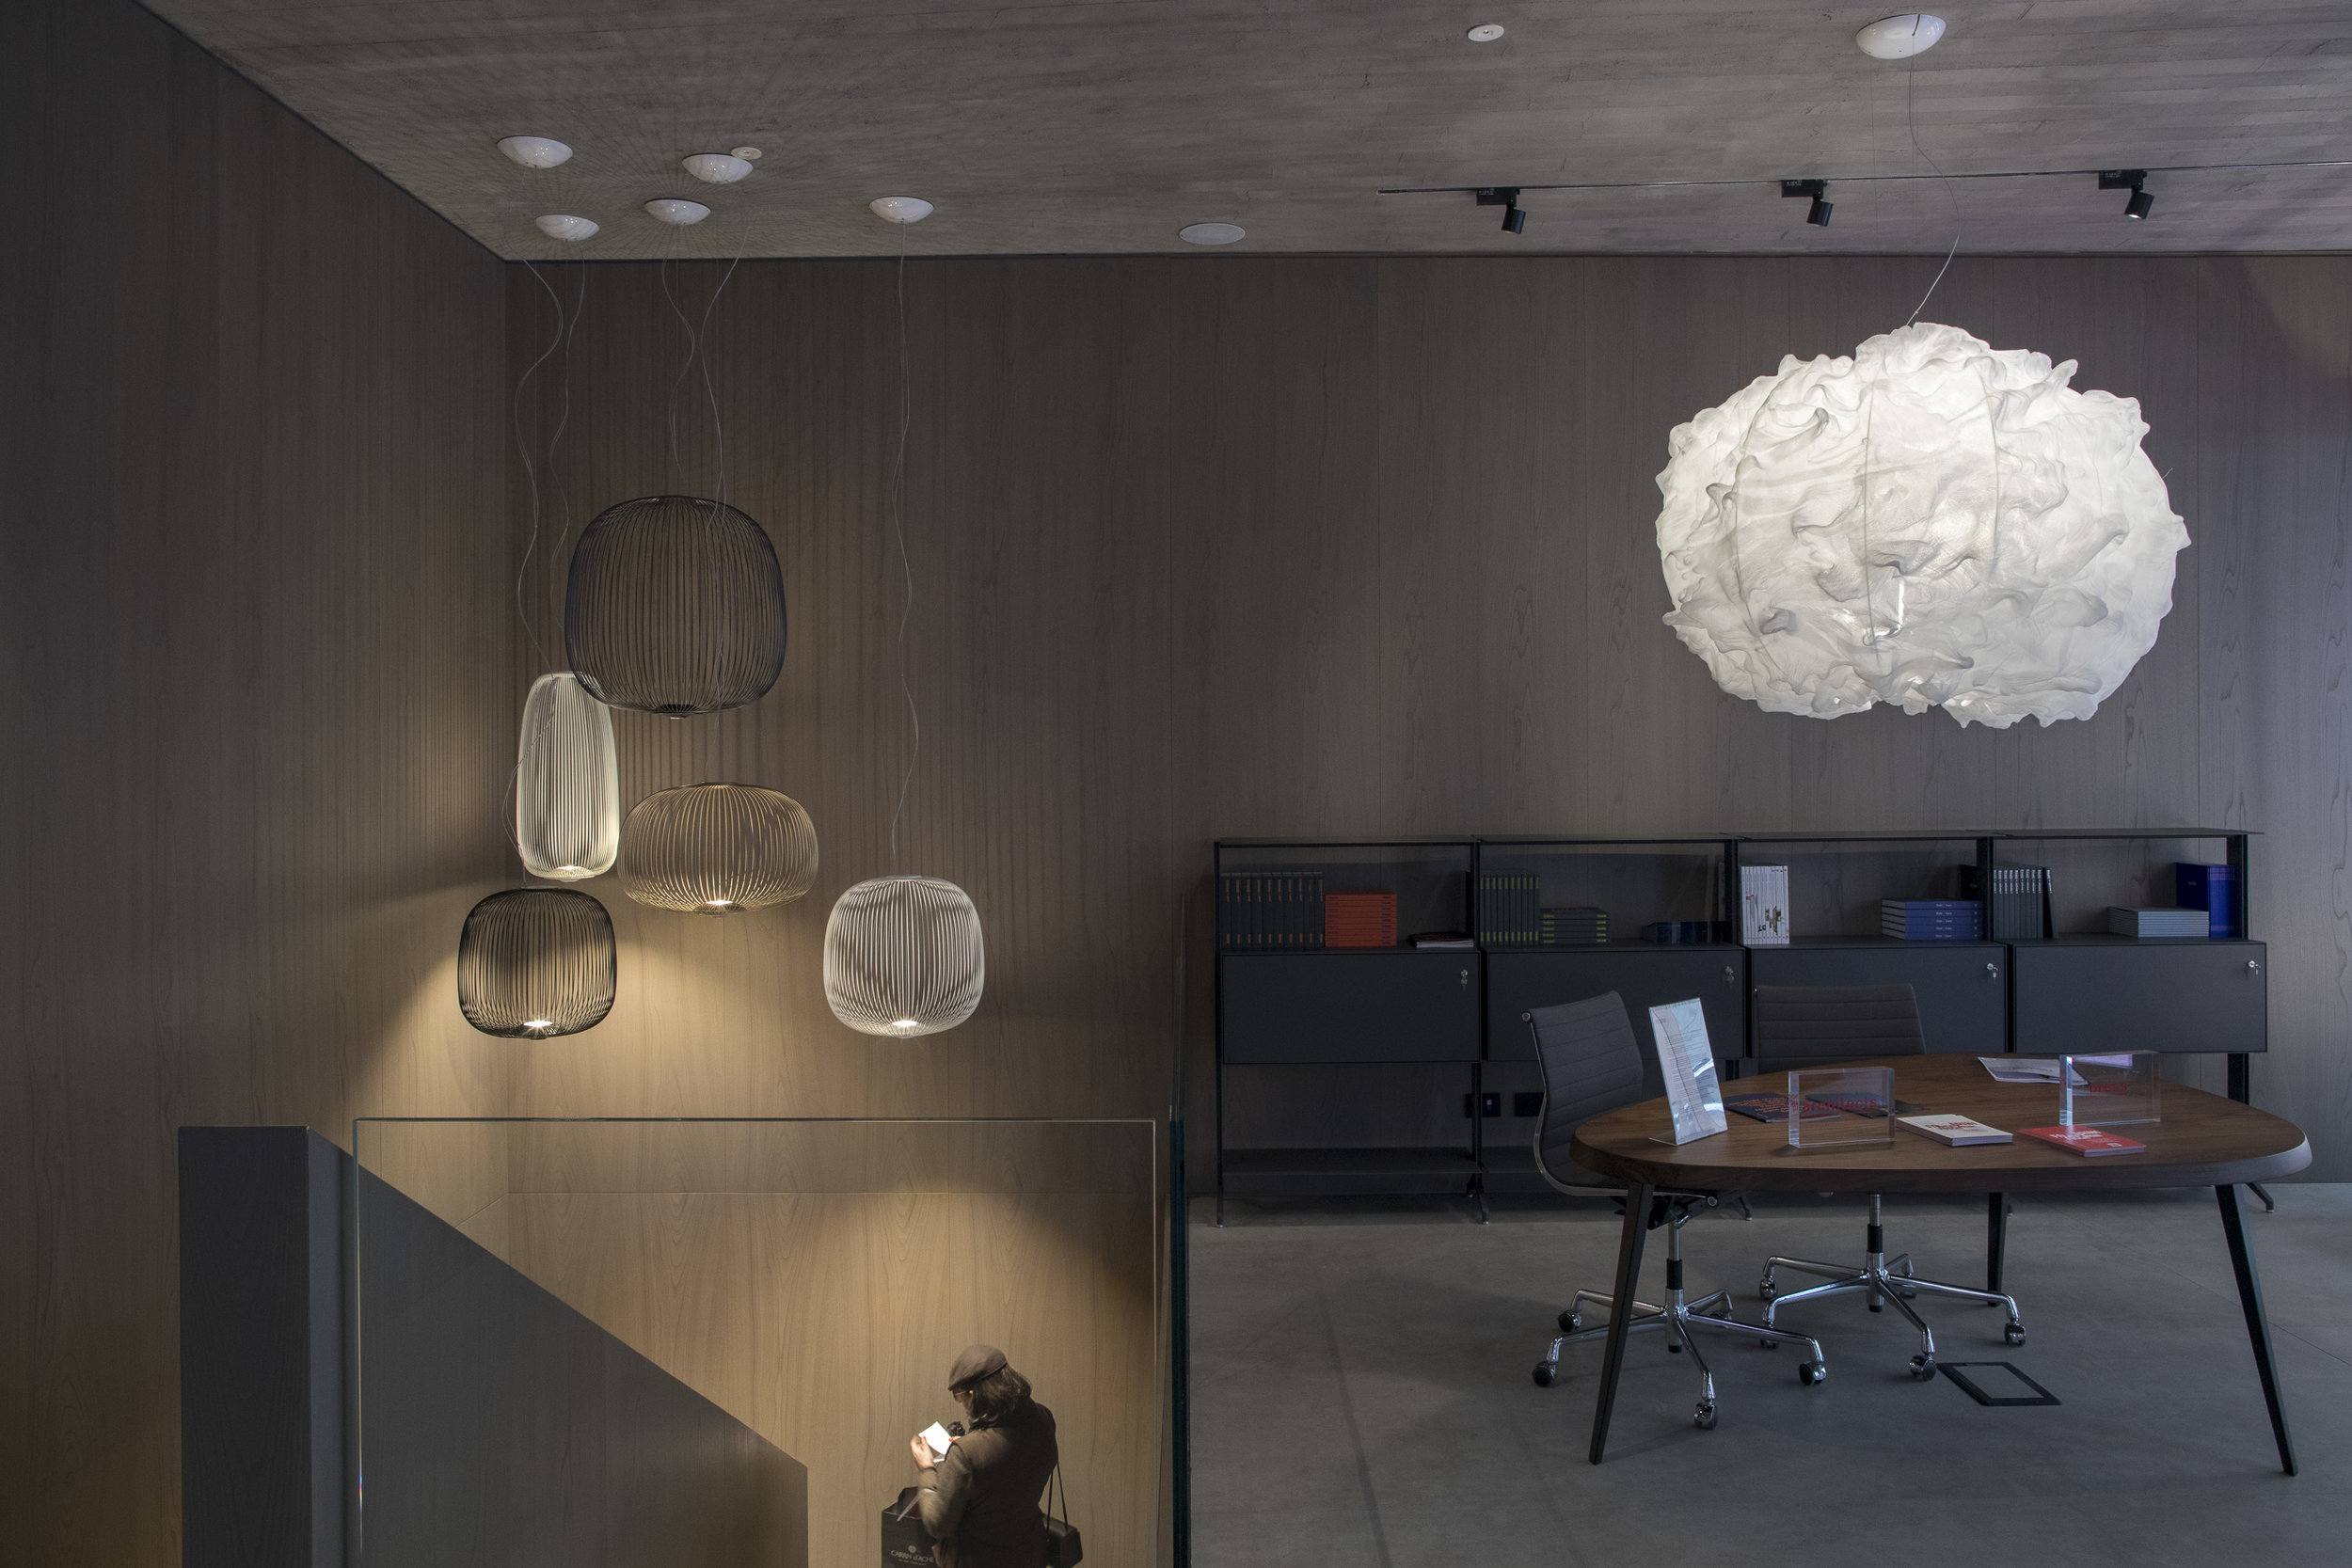 The Nuée lamp (right) designed by Marc Sadler inside Foscarini's new concrete-lined Milanese showroom. Photo © Foscarini.